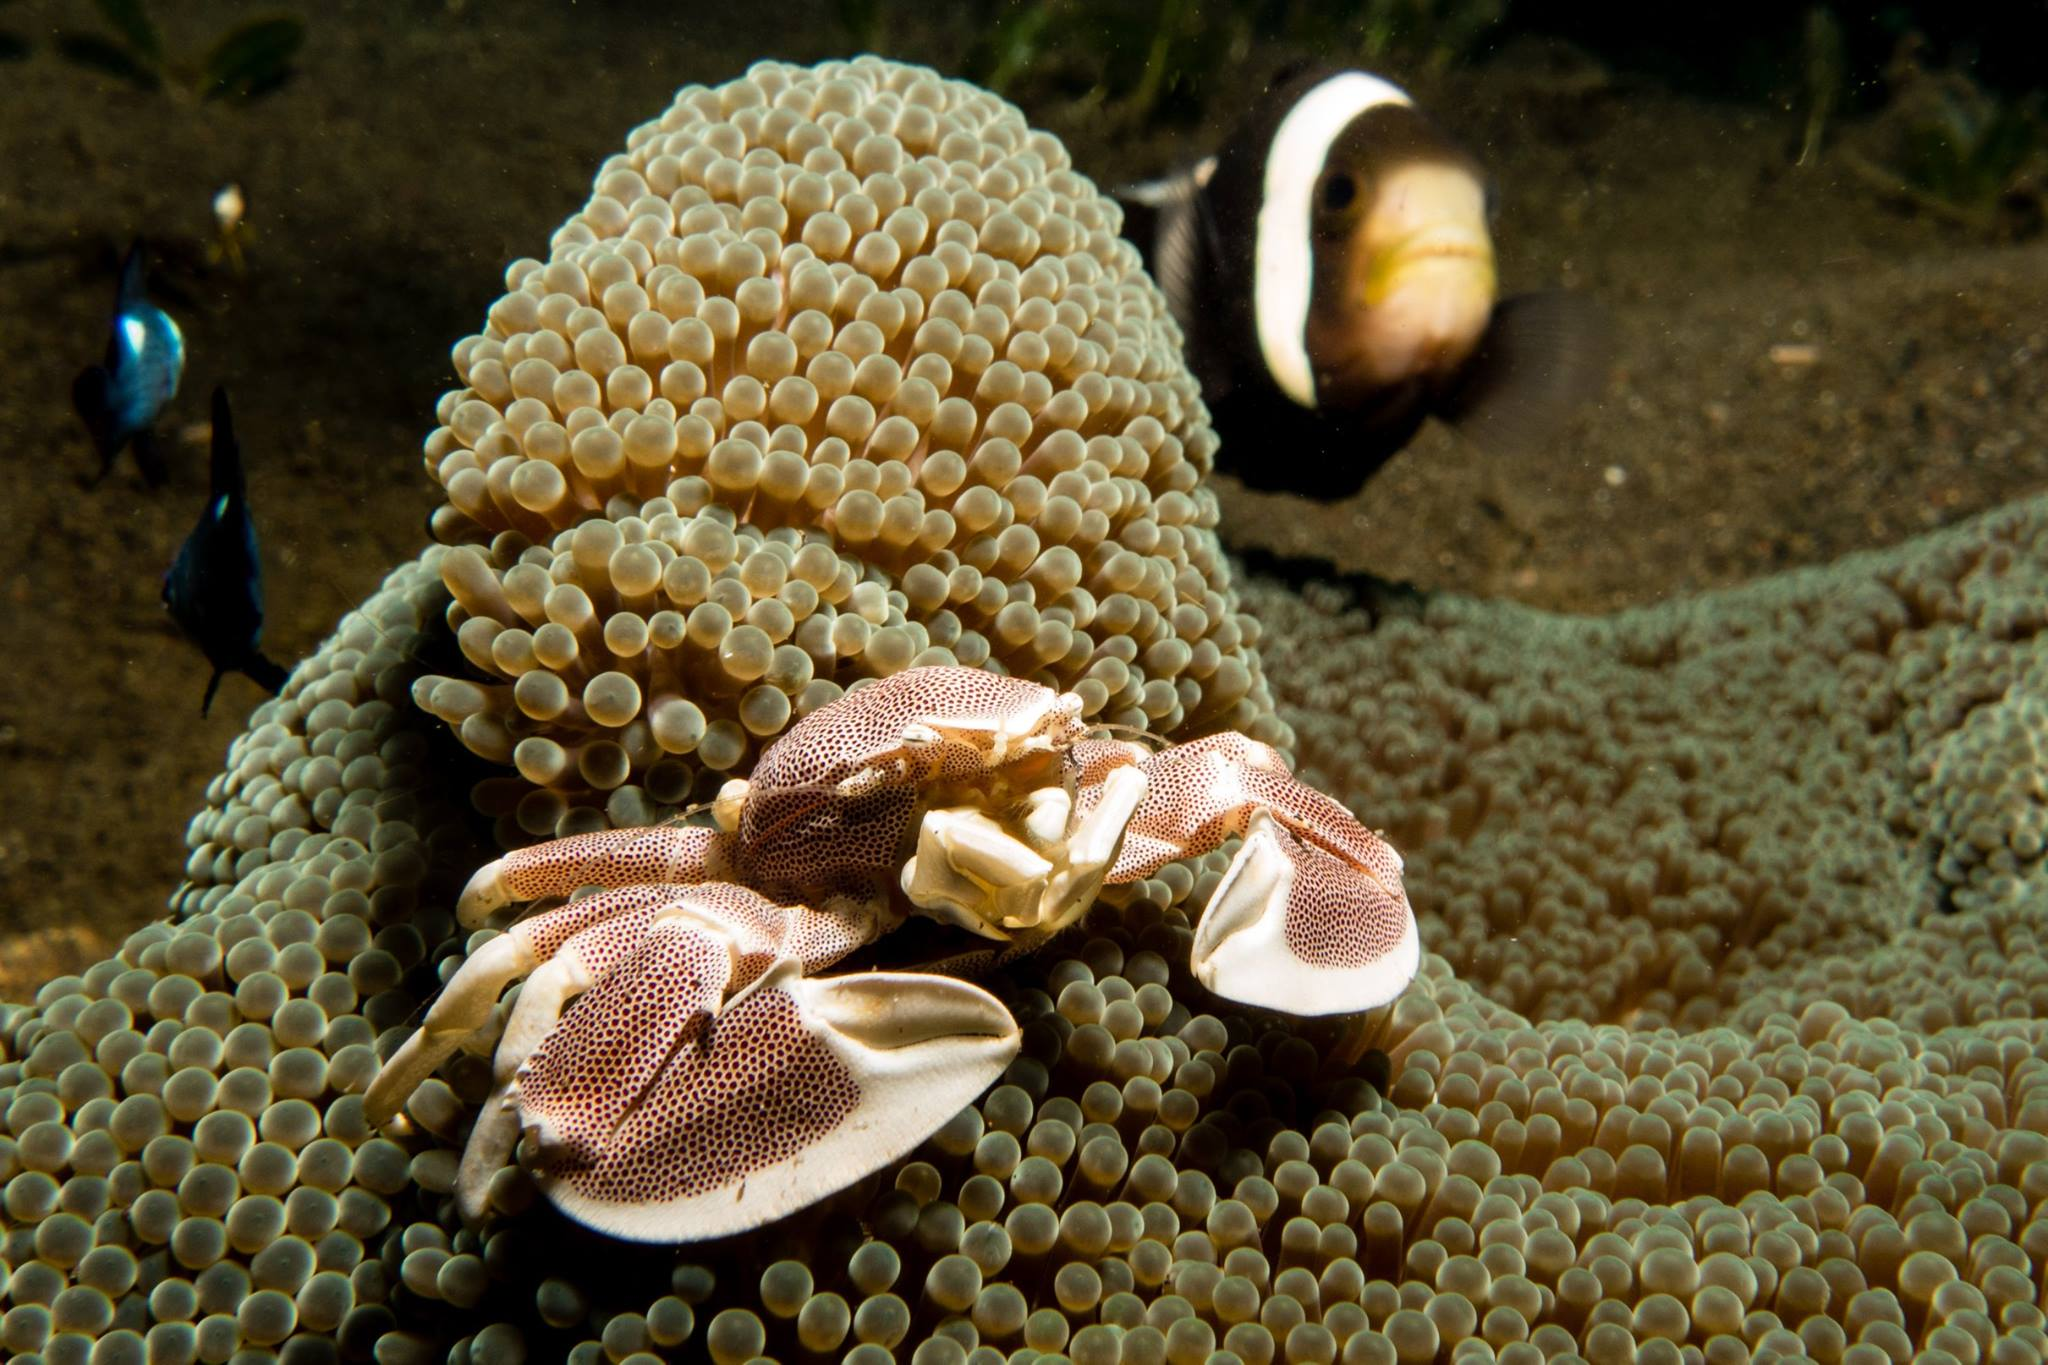 clownfish and porcelain crab